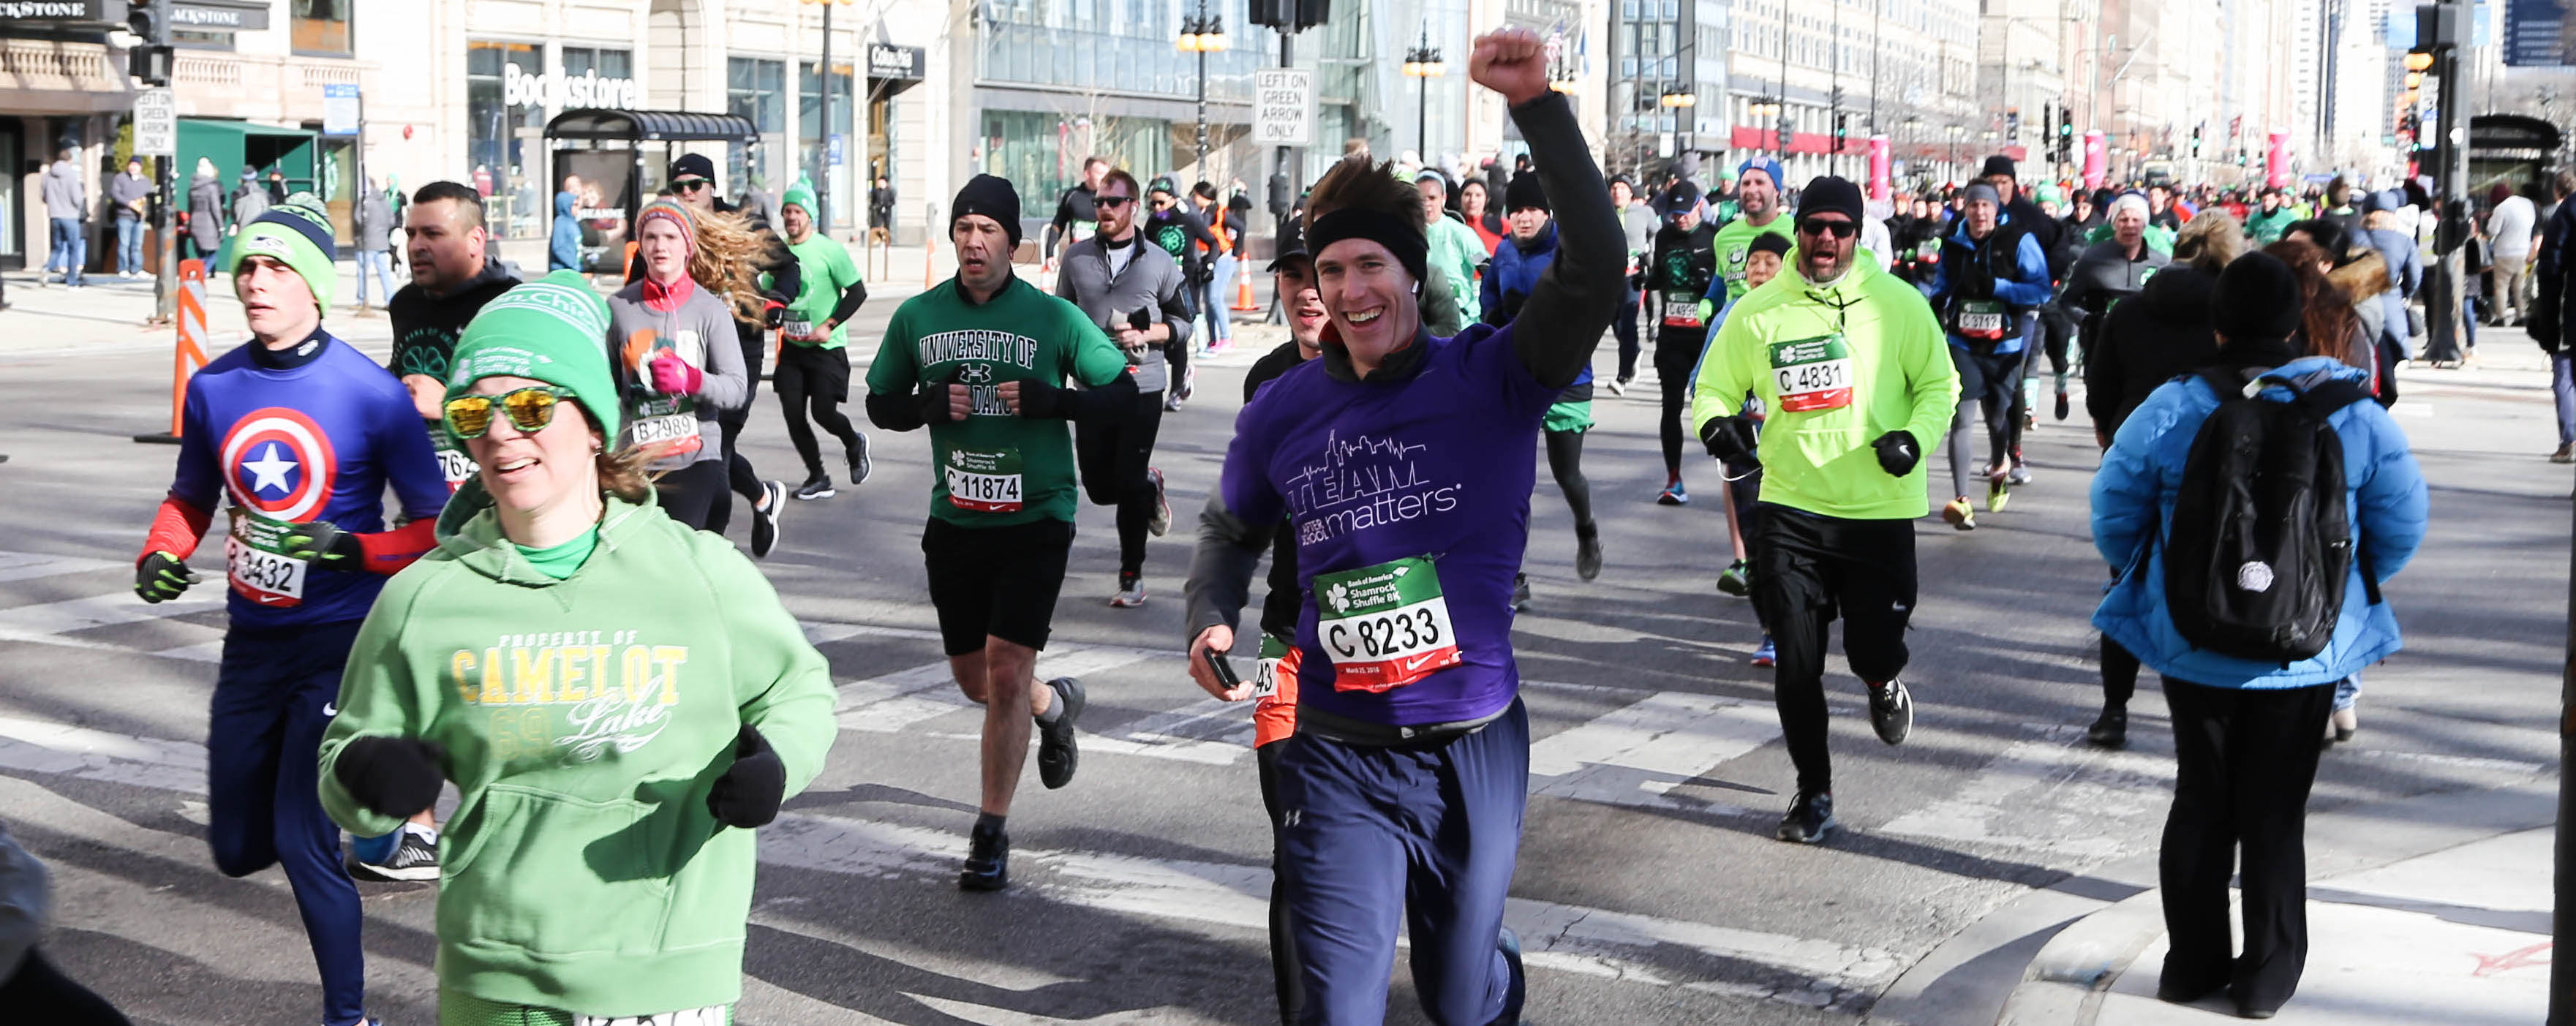 <h2>Run for the future of Chicago!</h2><div class='clear'></div><div class='gal_content'><p><p>Sign up to support Strides for Peace on June 7!</p> <a href='http://www.afterschoolmatters.org/support-us/strides-for-peace/'>It's what matters > </a></p></div>